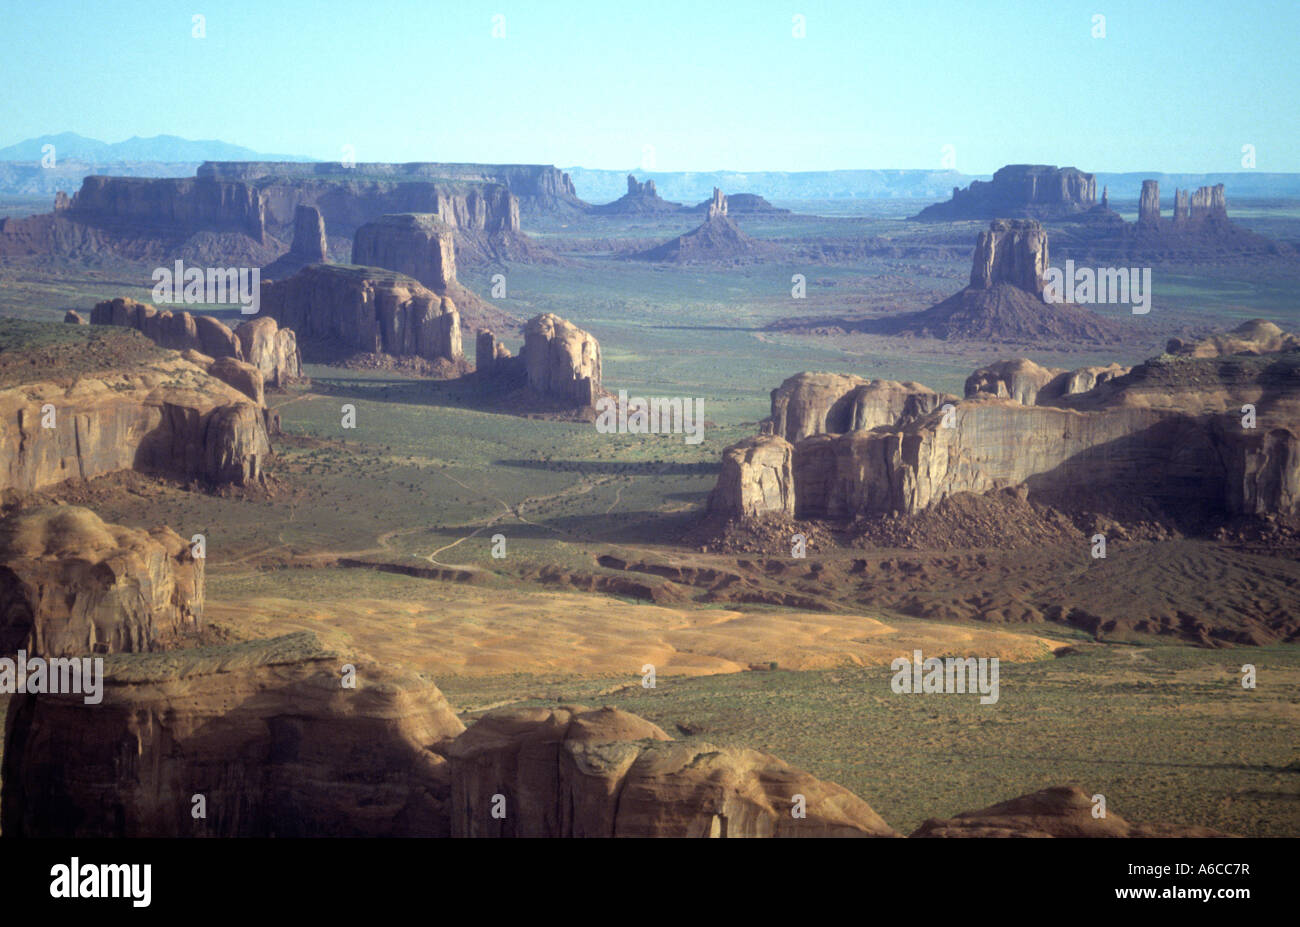 Ariel View Of Monument Valley In The American States Of Utah & Arizona. - Stock Image